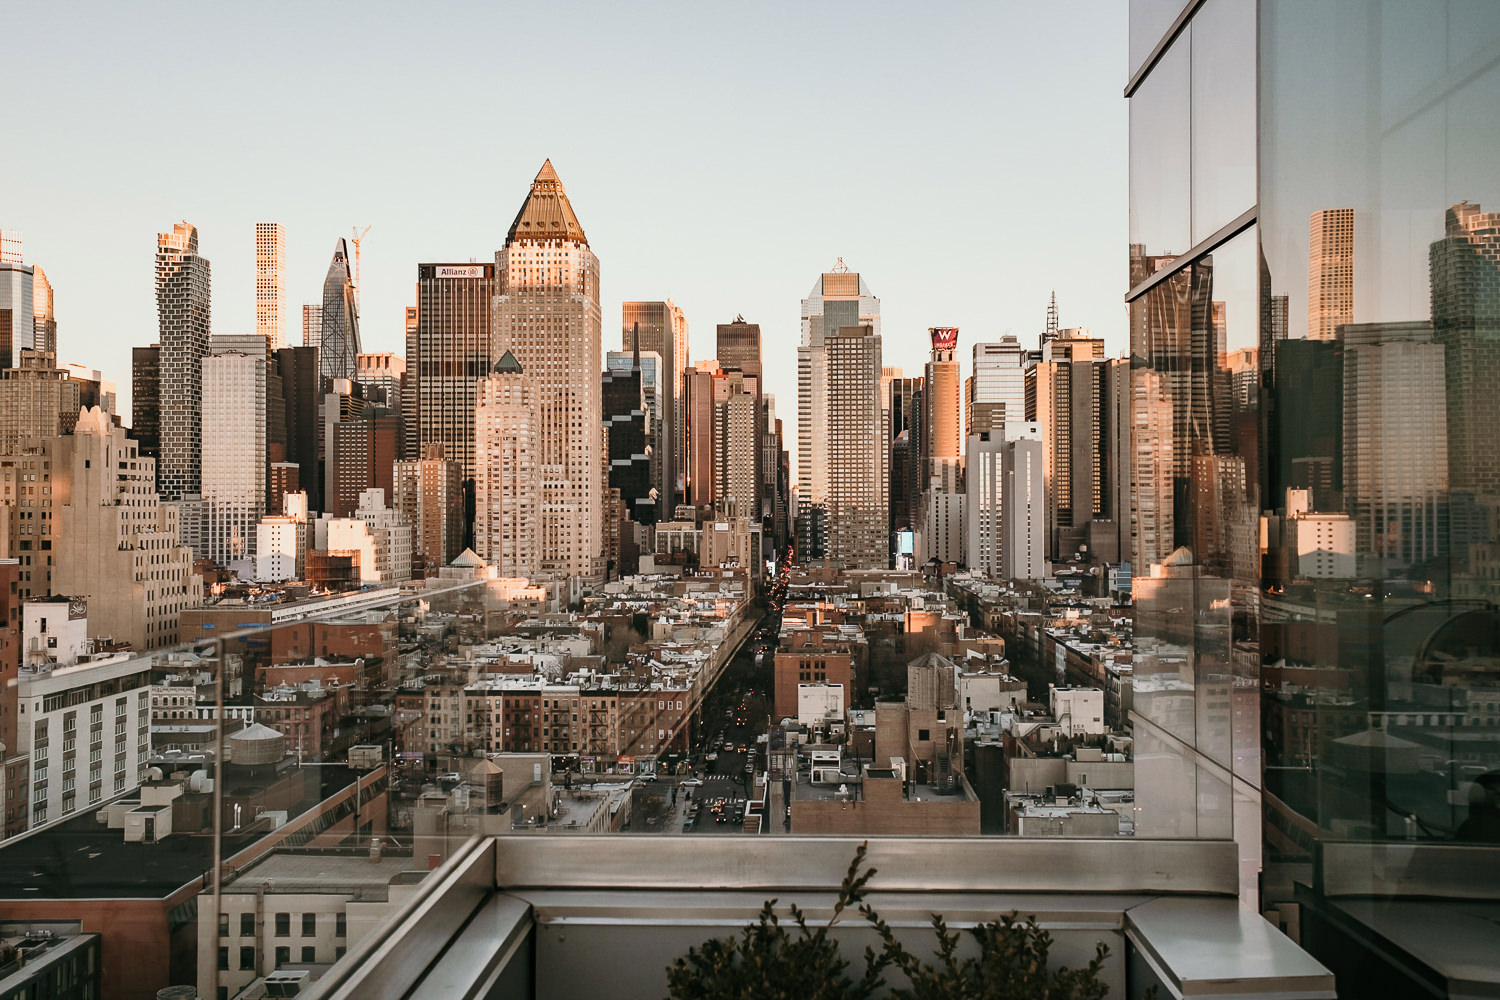 rooftop view of New York city skyline